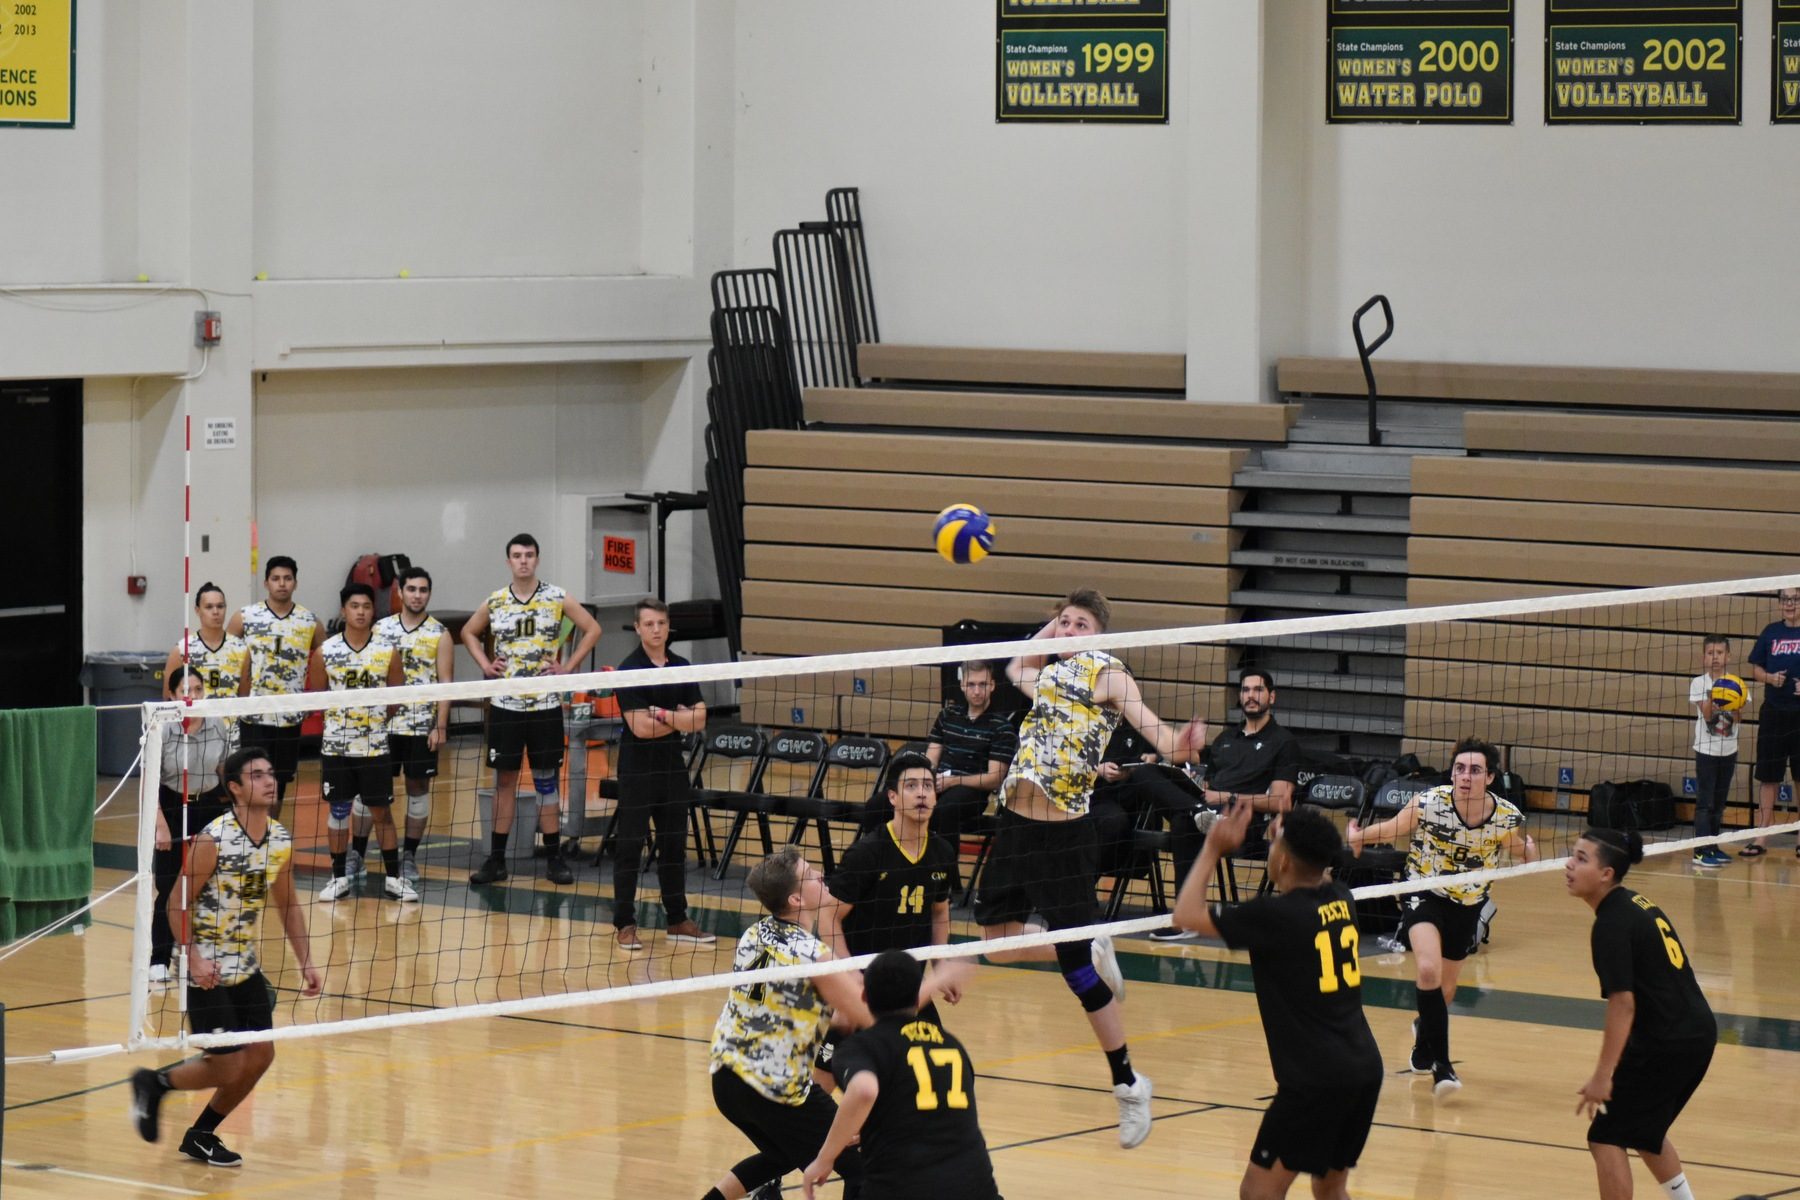 M Volleyball: Victorious in Second Straight Sweep